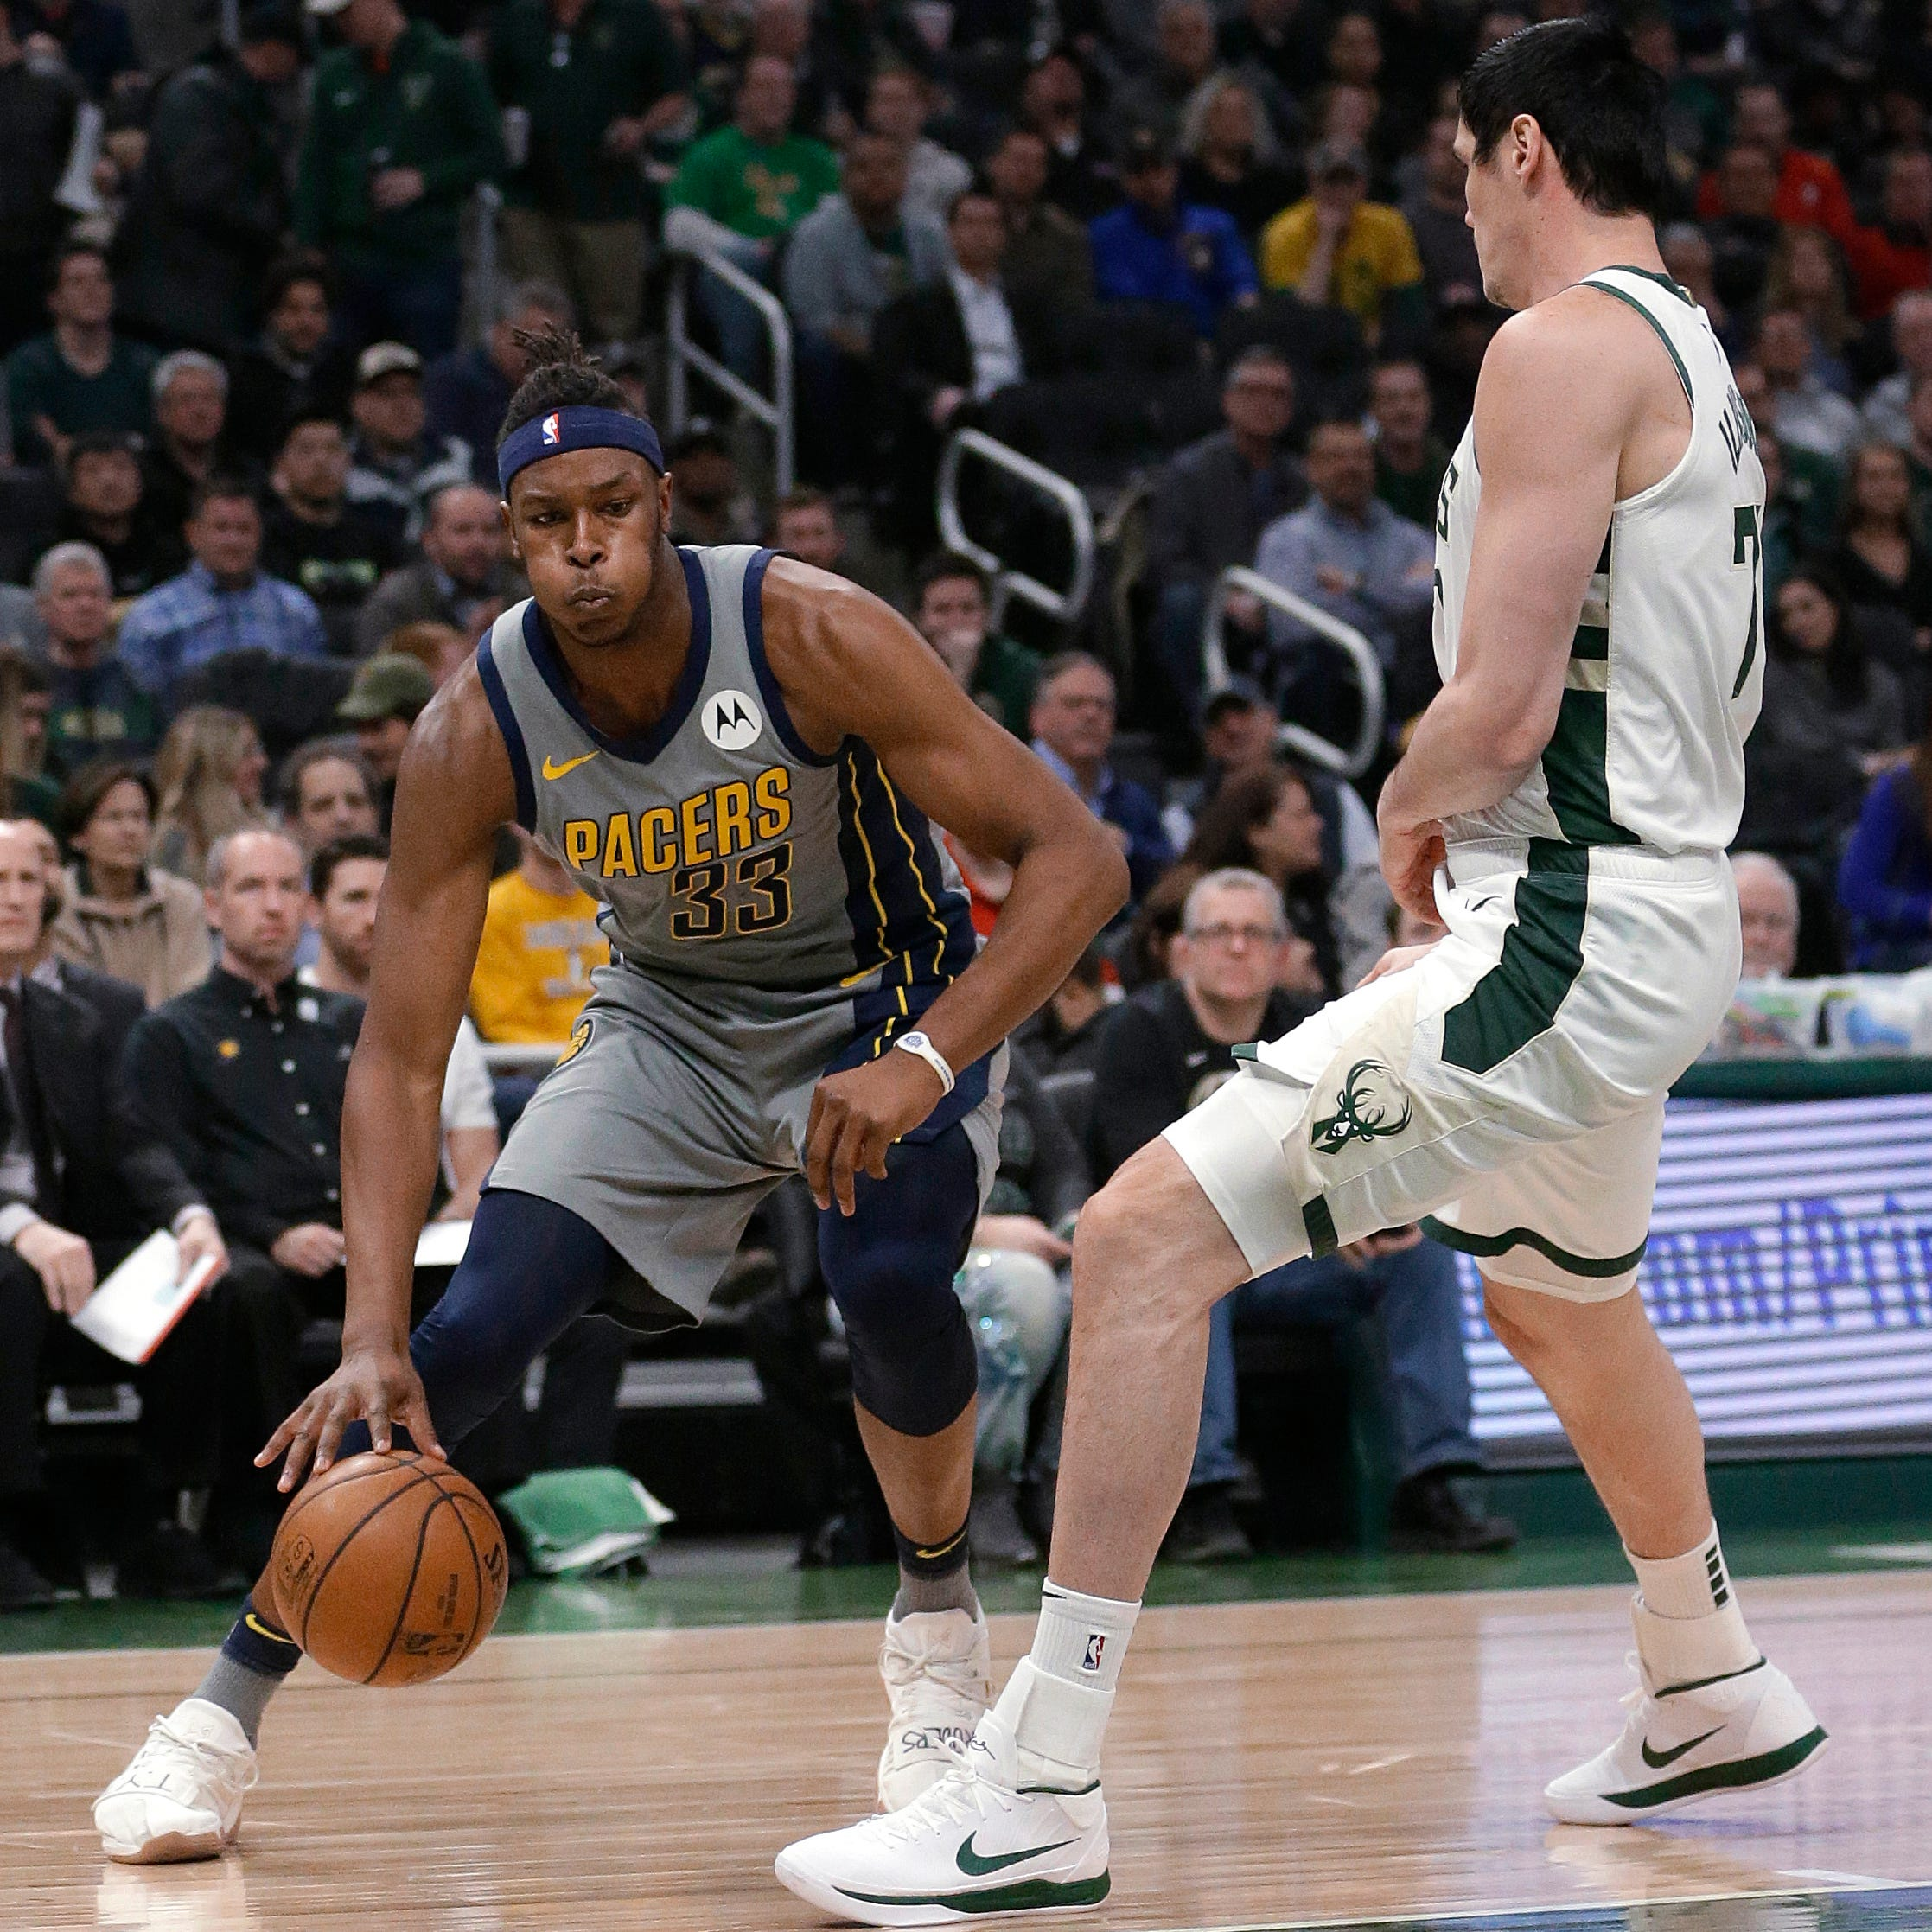 Insider: How Myles Turner's block of Bucks' Giannis turned the game against the Pacers